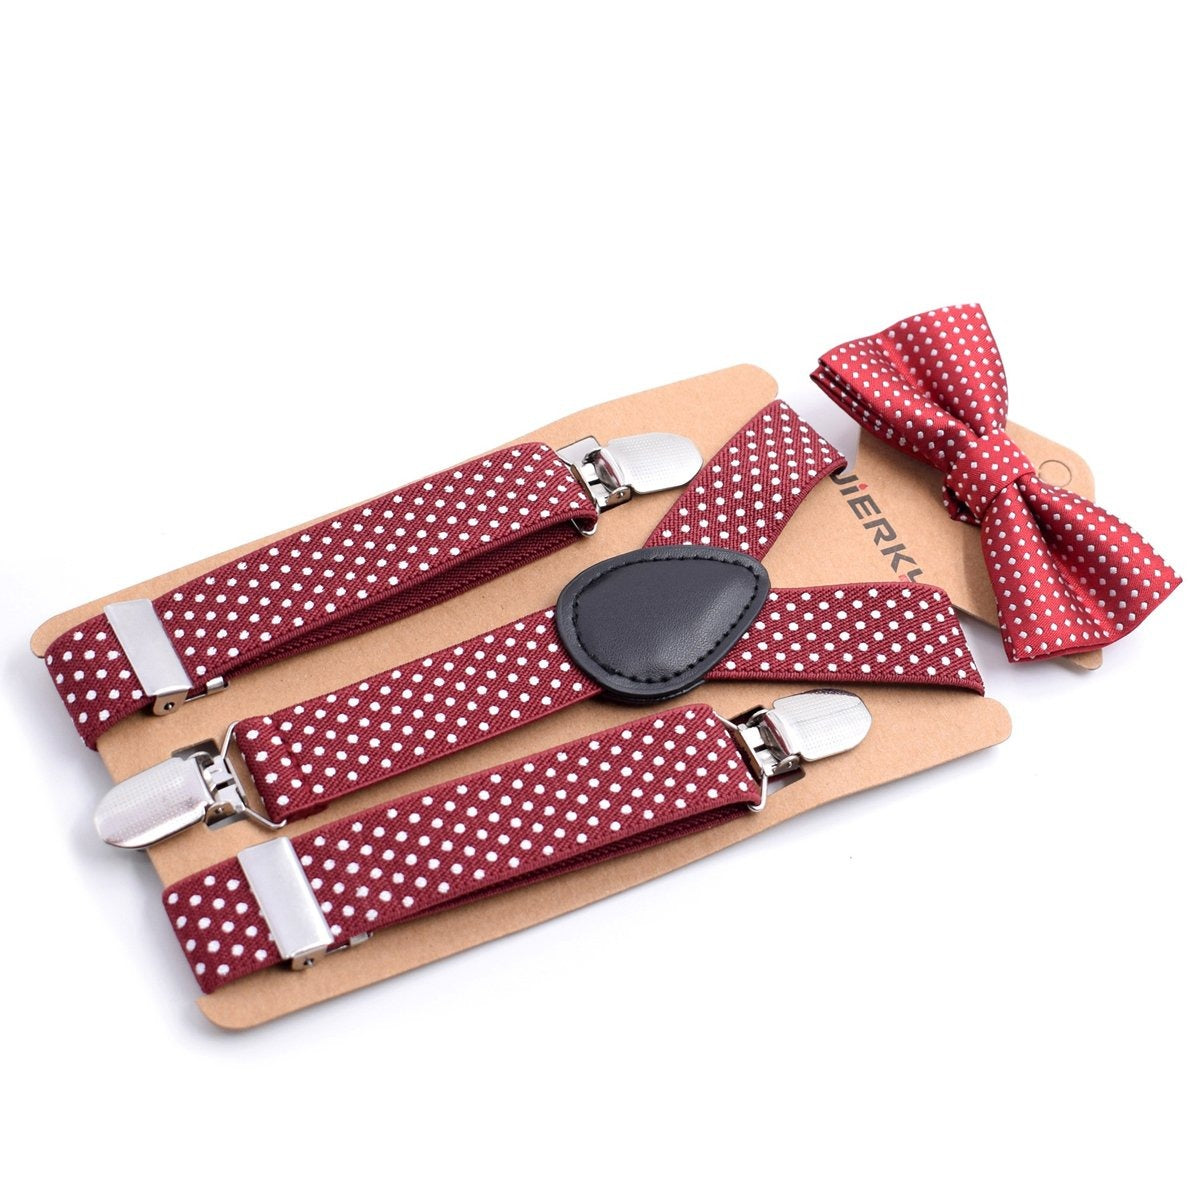 Polka Dot Bow Tie and Adjustable Suspenders Set